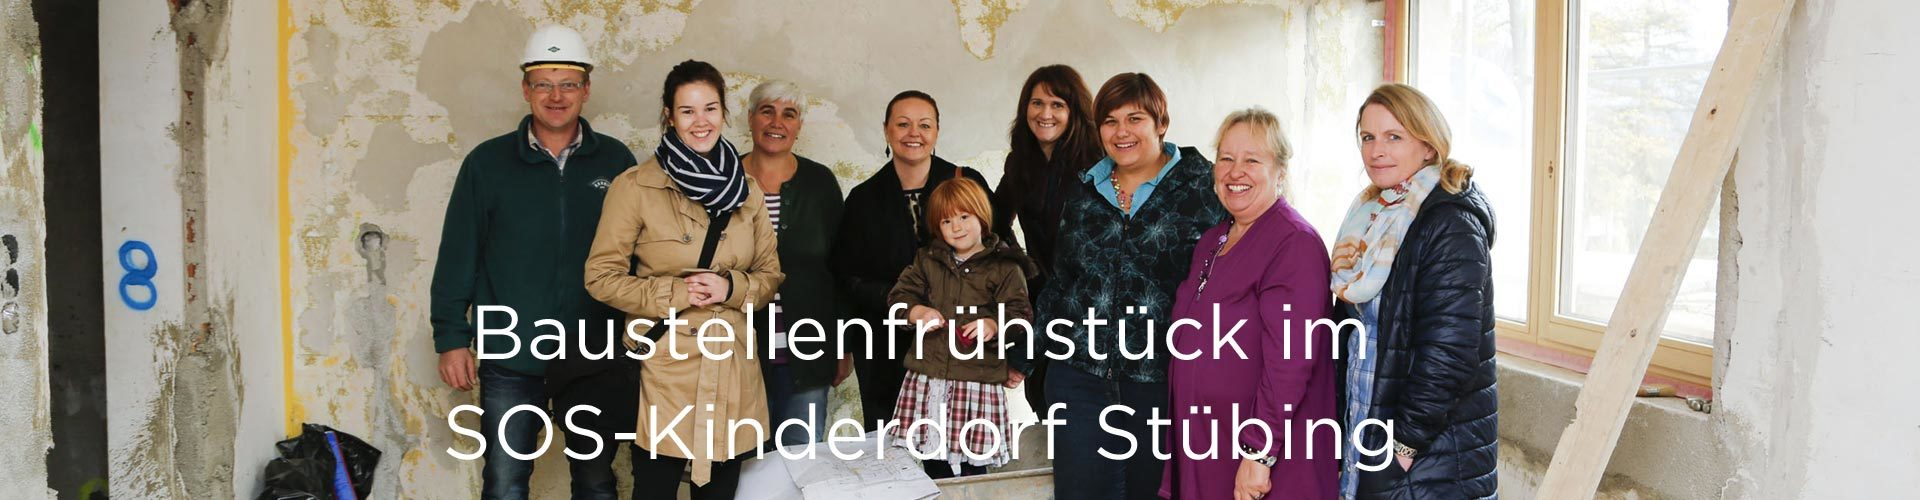 SOS-Kinderdorf Stübing - Baustellenfrühstück (© Great Lengths)